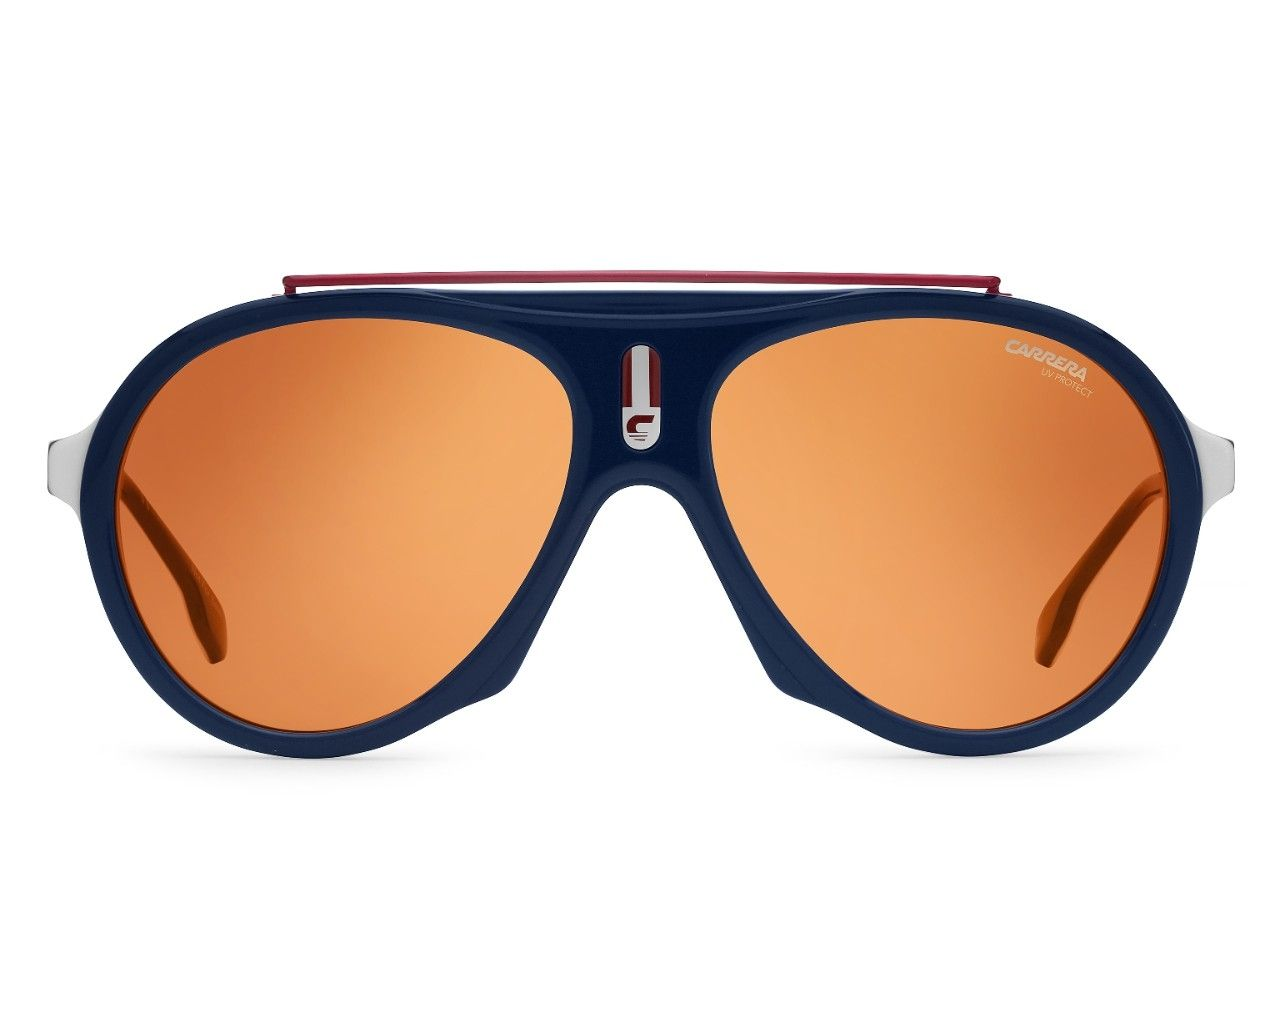 930df22dba thumbnail Sunglasses Carrera CARRERA-FLAG 8RU W7 57-16 Blue Bordeaux  profile view